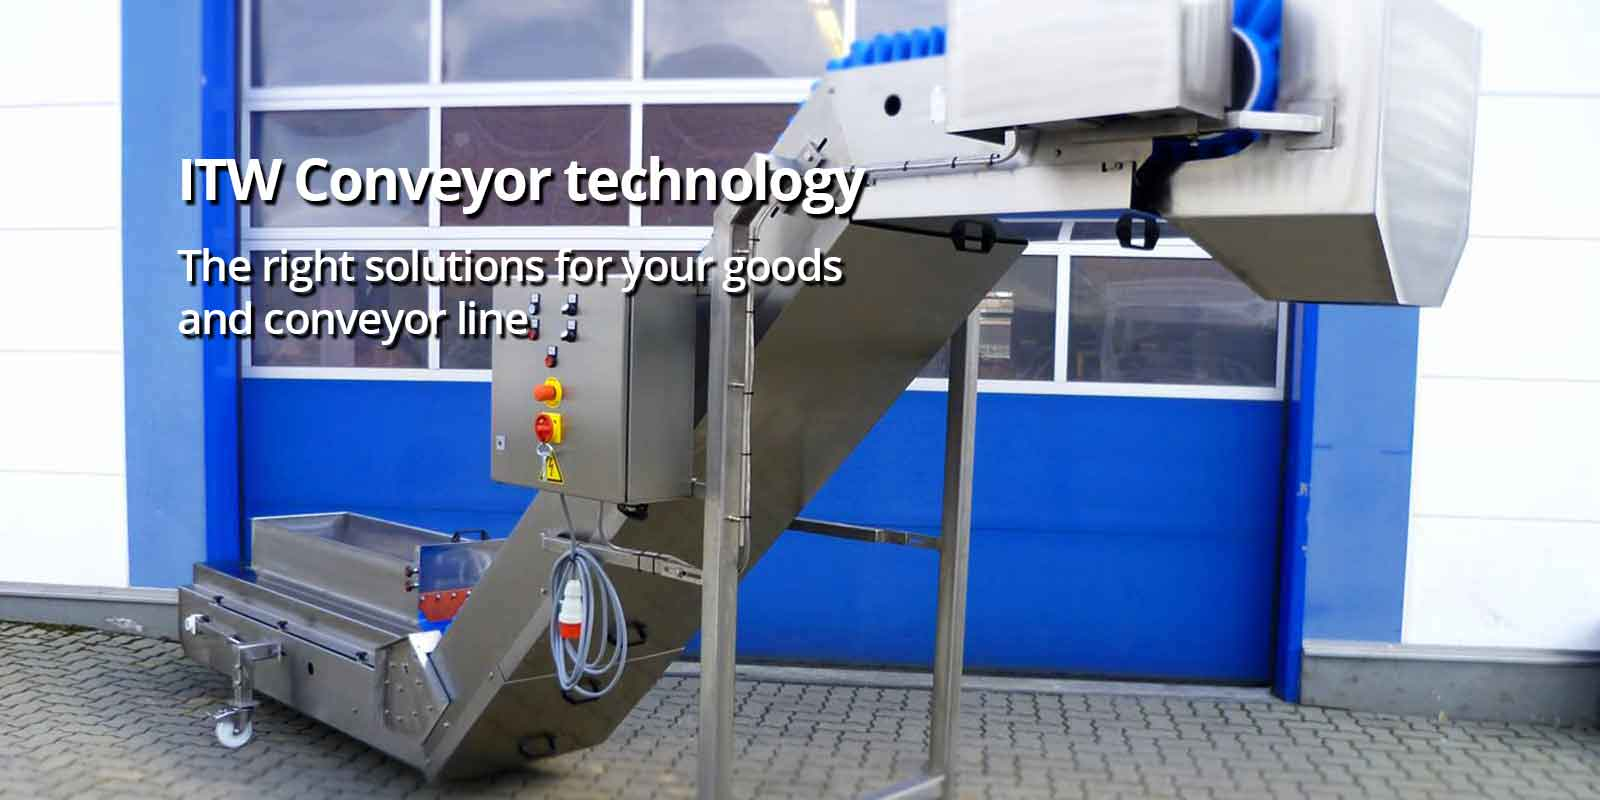 ITW Conveyor technology The right solutions for your goods and conveyor line